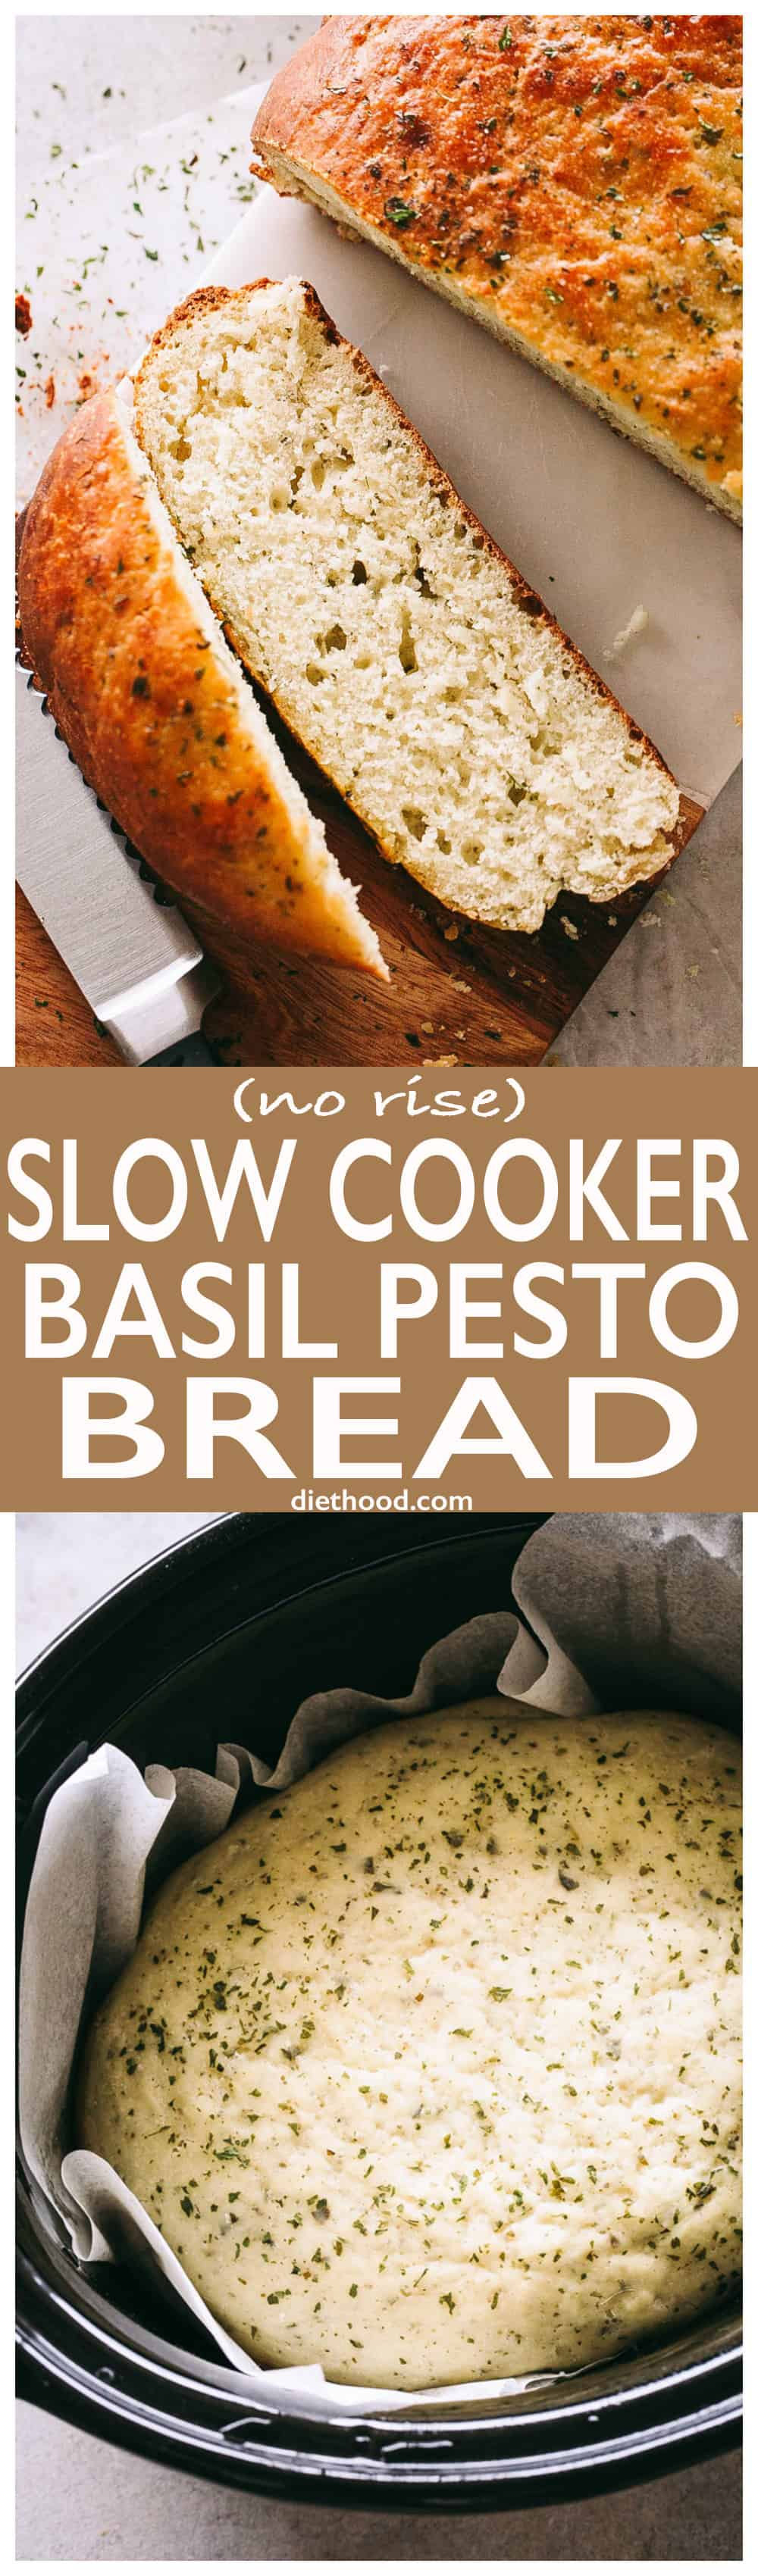 (No-Rise) Slow Cooker Basil Pesto Bread - This no-rise, no-fuss, SUPER DELICIOUS slow cooker bread is packed with basil pesto and it's probably one of the most flavorful bread recipes you will ever make! #slowcooker #bread #crockpot